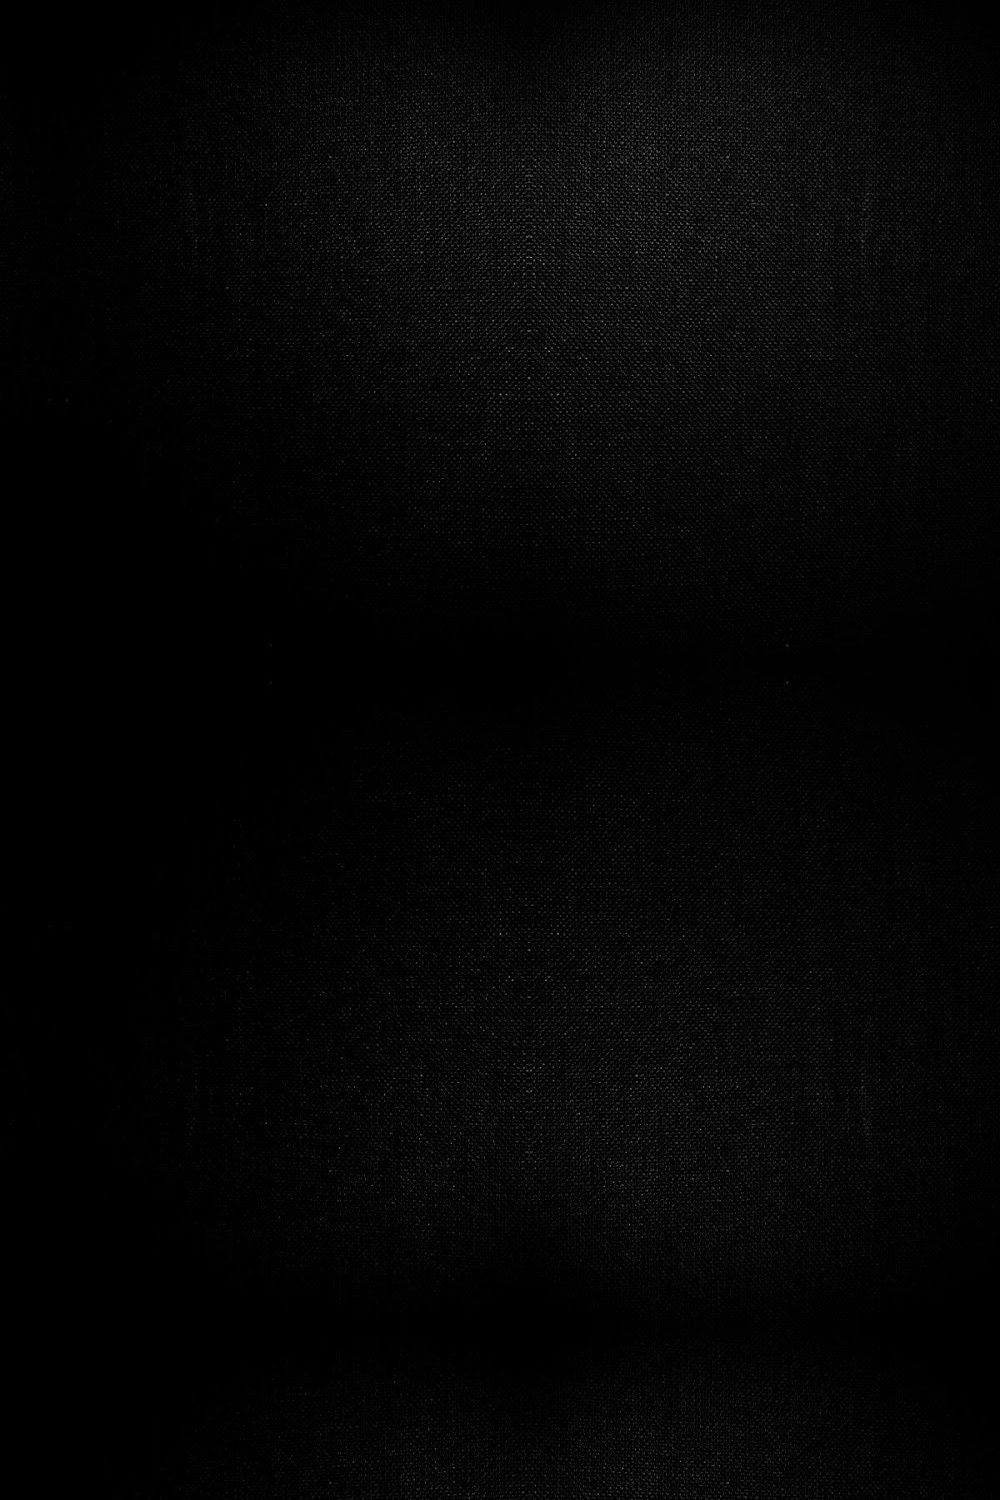 Black Background Polos In 2020 Black Background Wallpaper Black Hd Wallpaper Pure Black Wallpaper